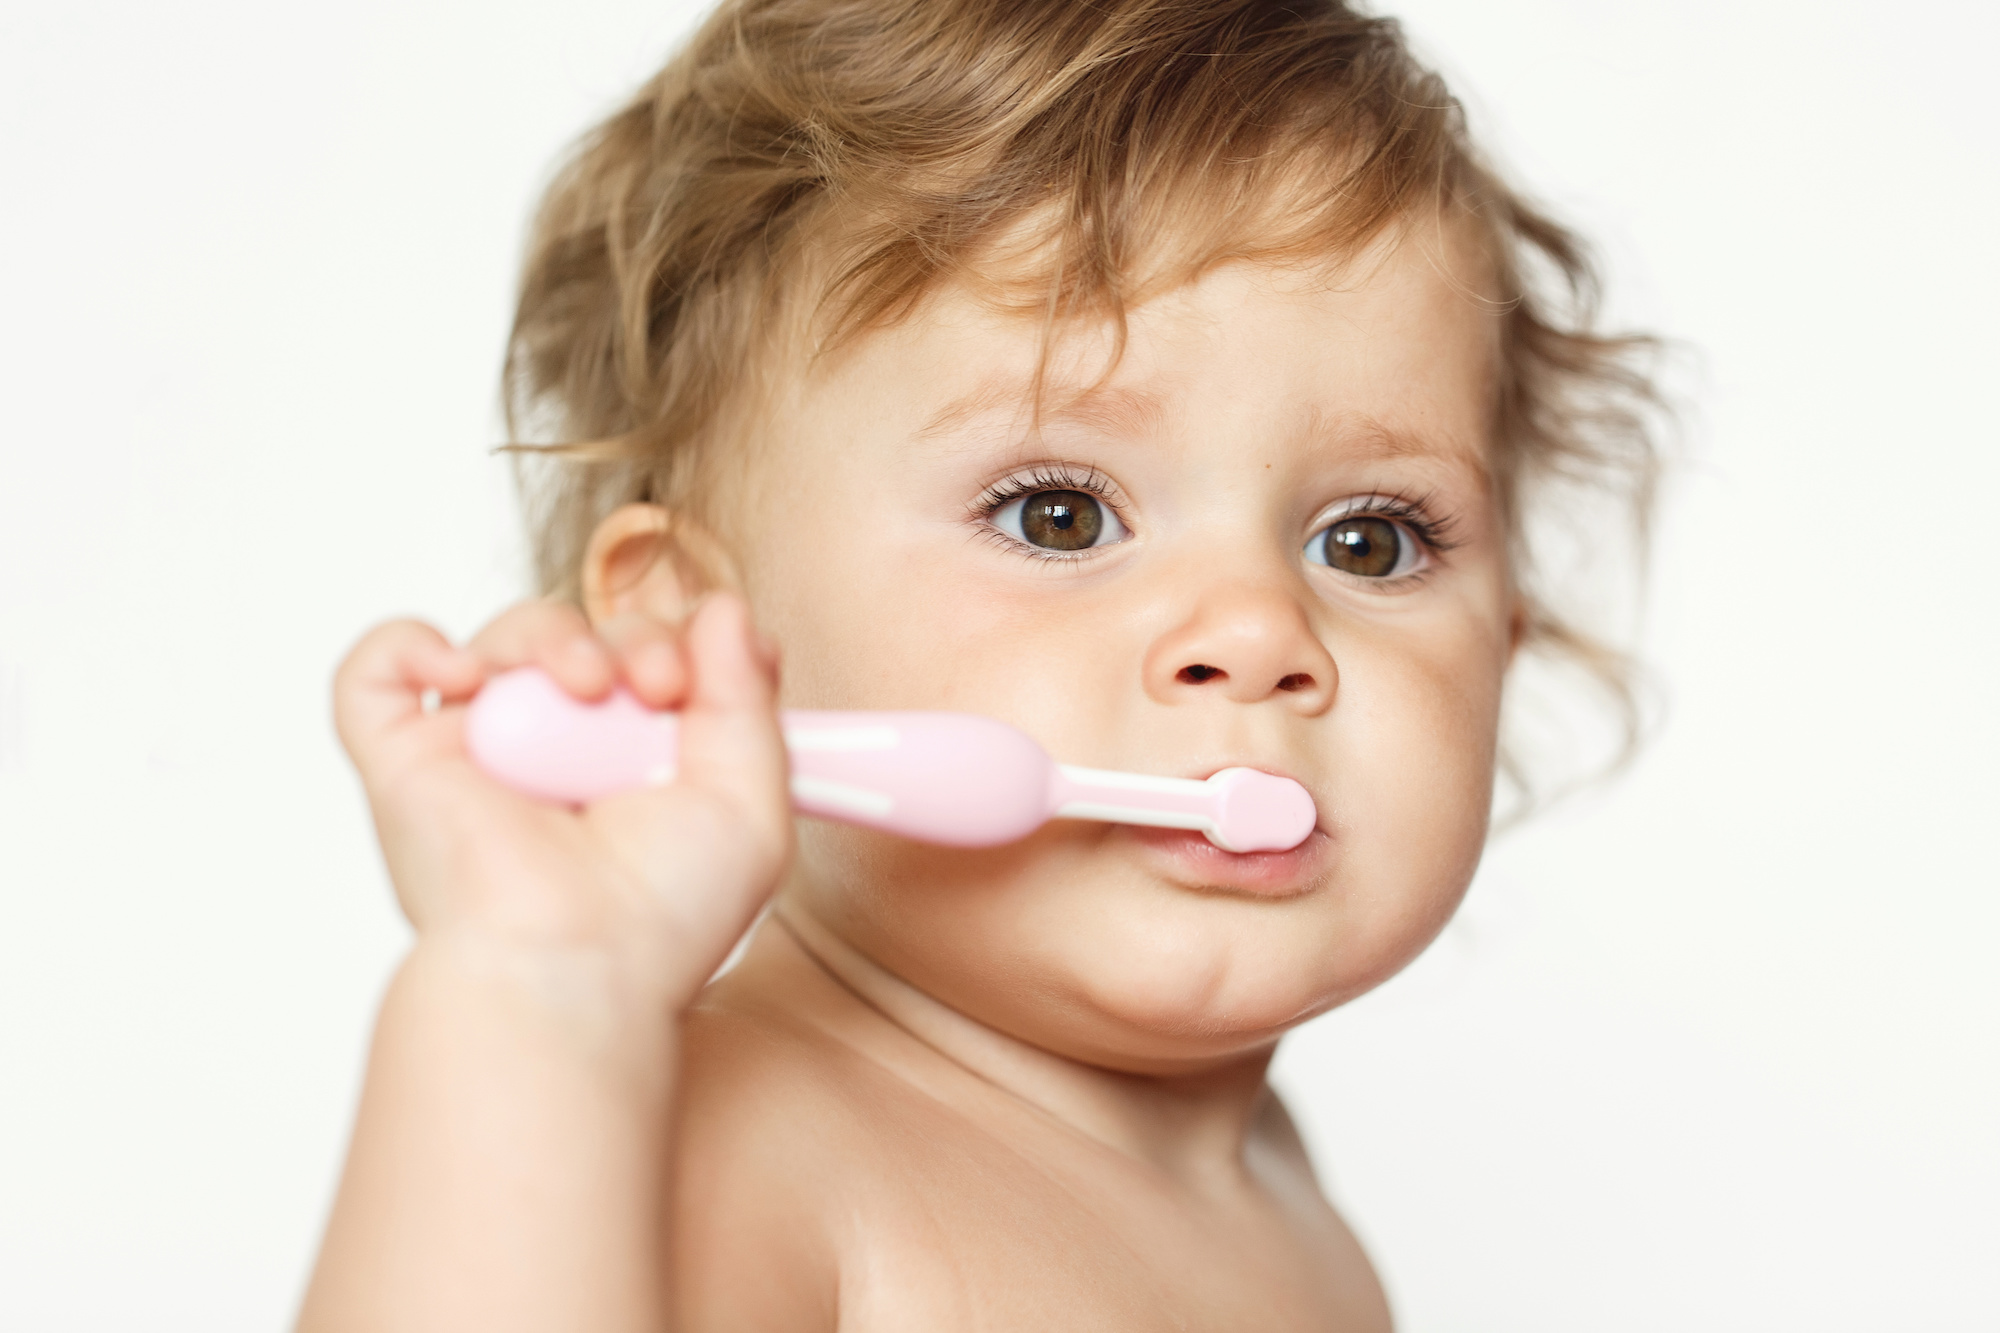 Why Does My Toddler Have Swollen Gums? Should I Be Concerned?